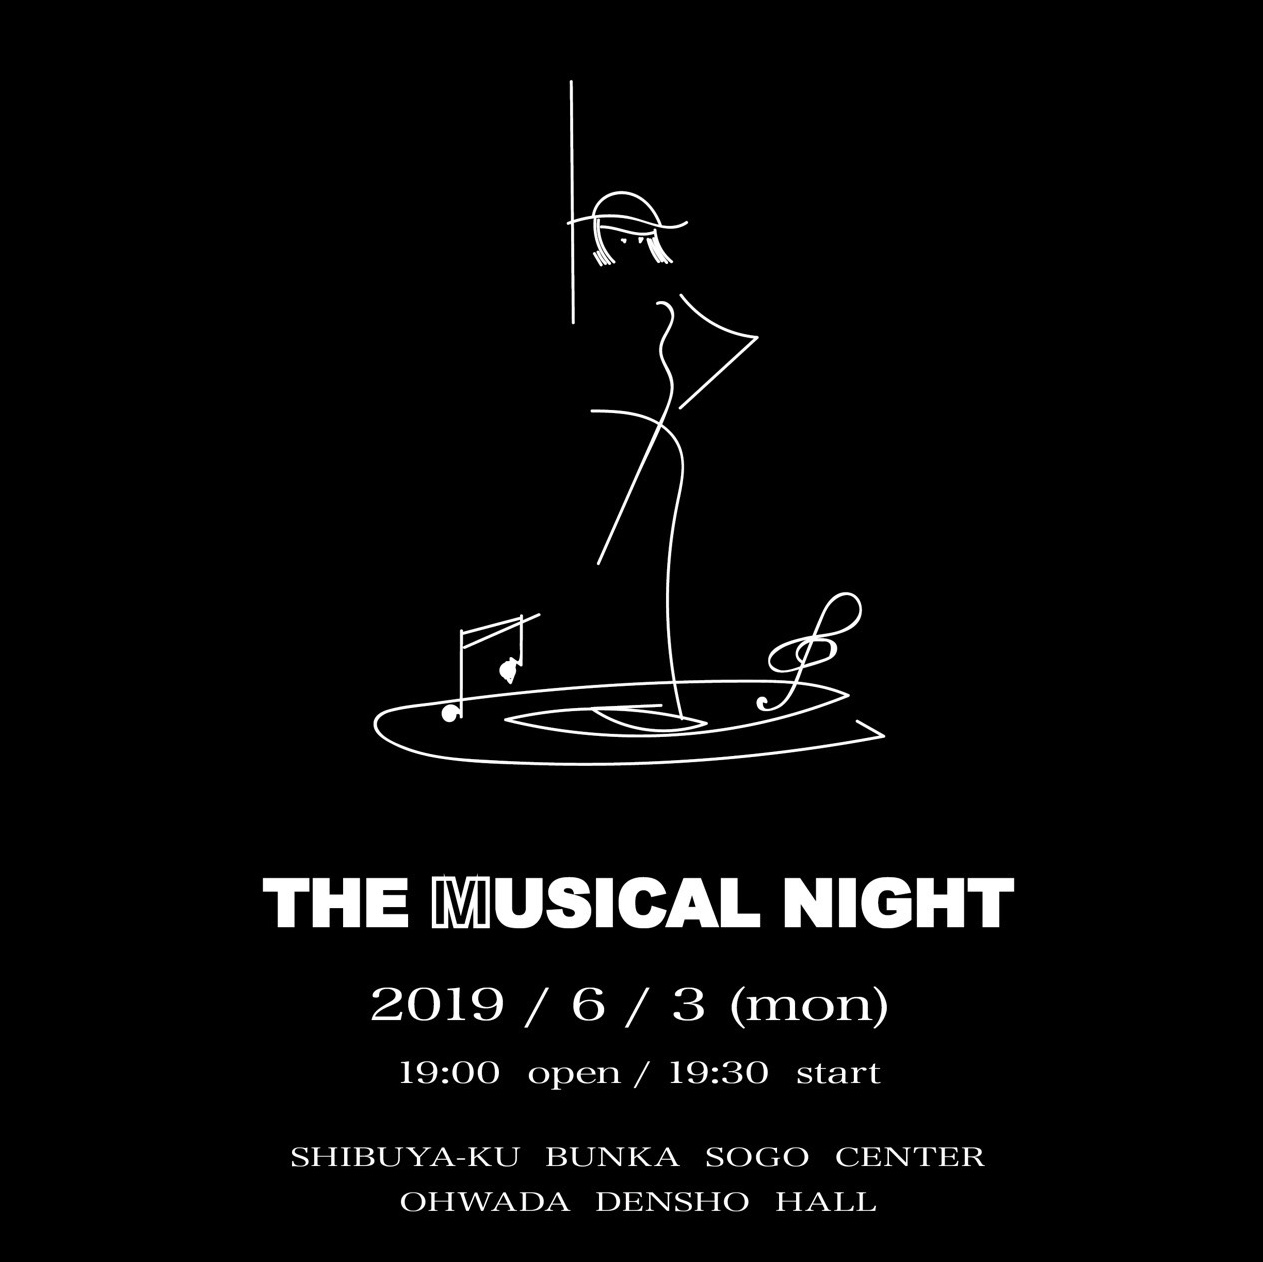 THE MUSICAL NIGHT